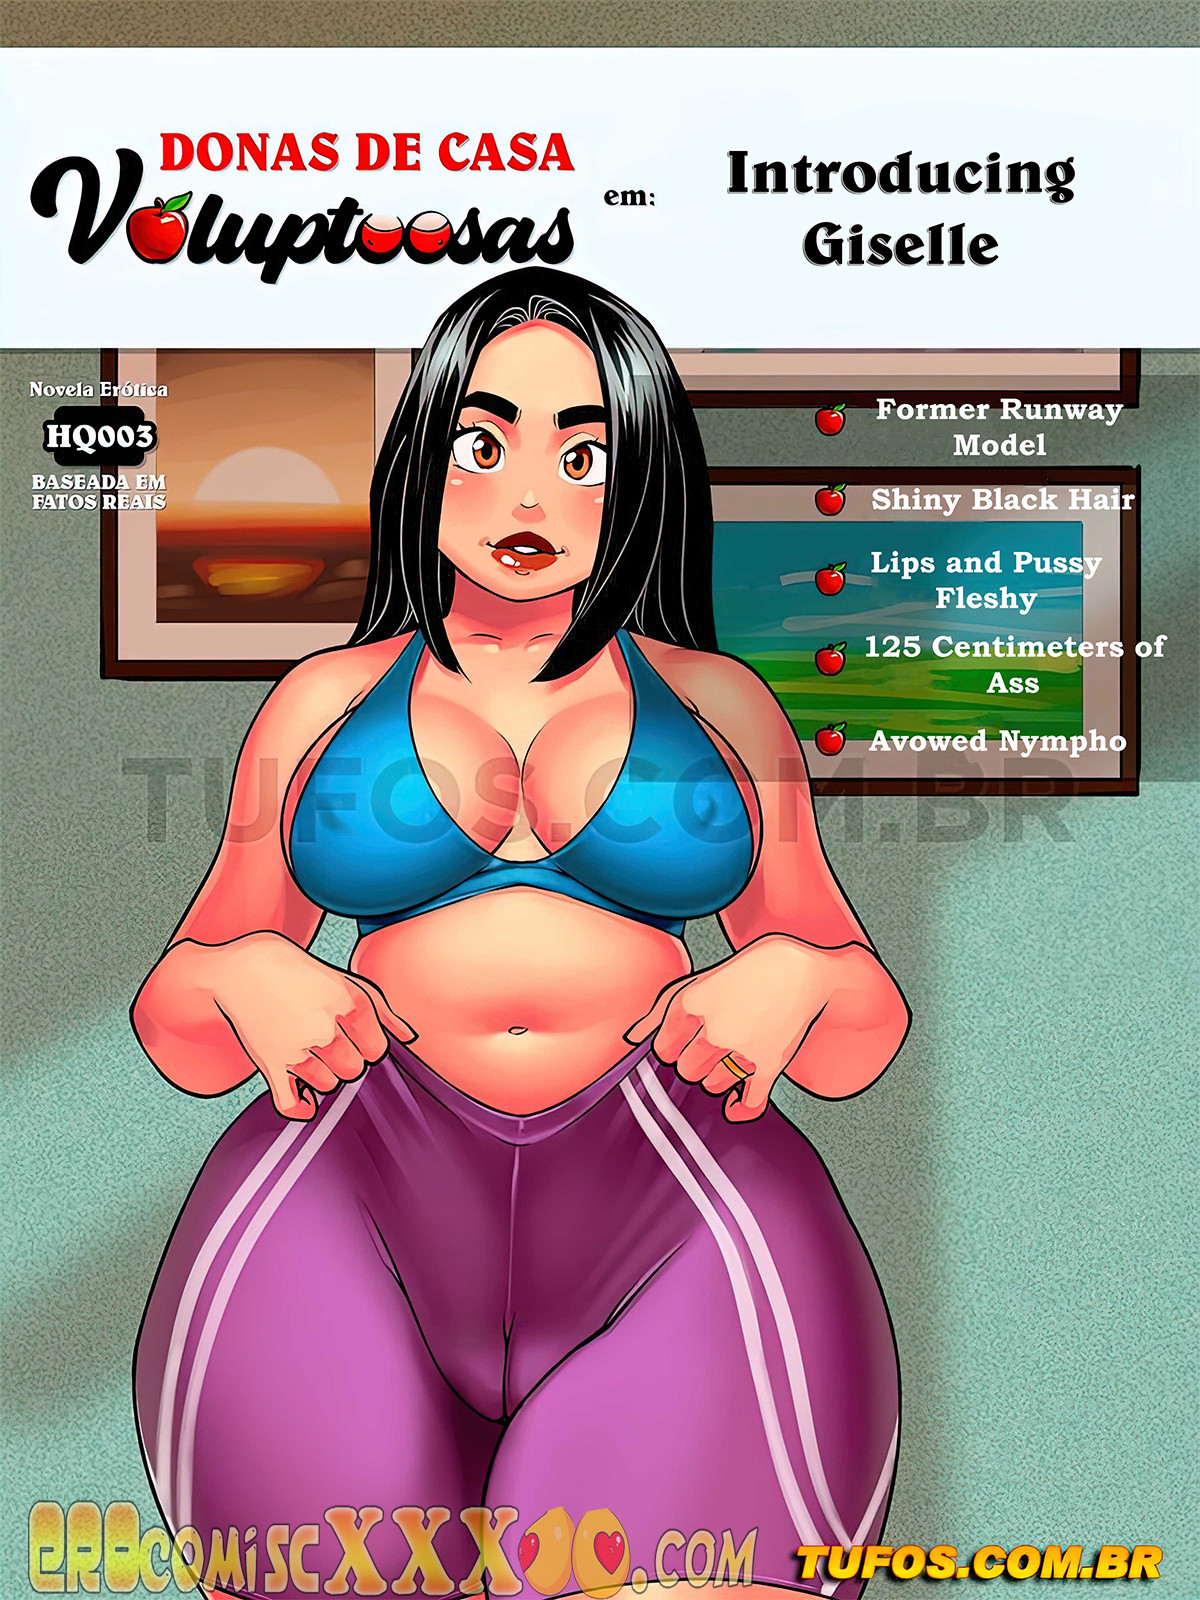 001 29 - Voluptuous Housewives 3 - Introducing Giselle.